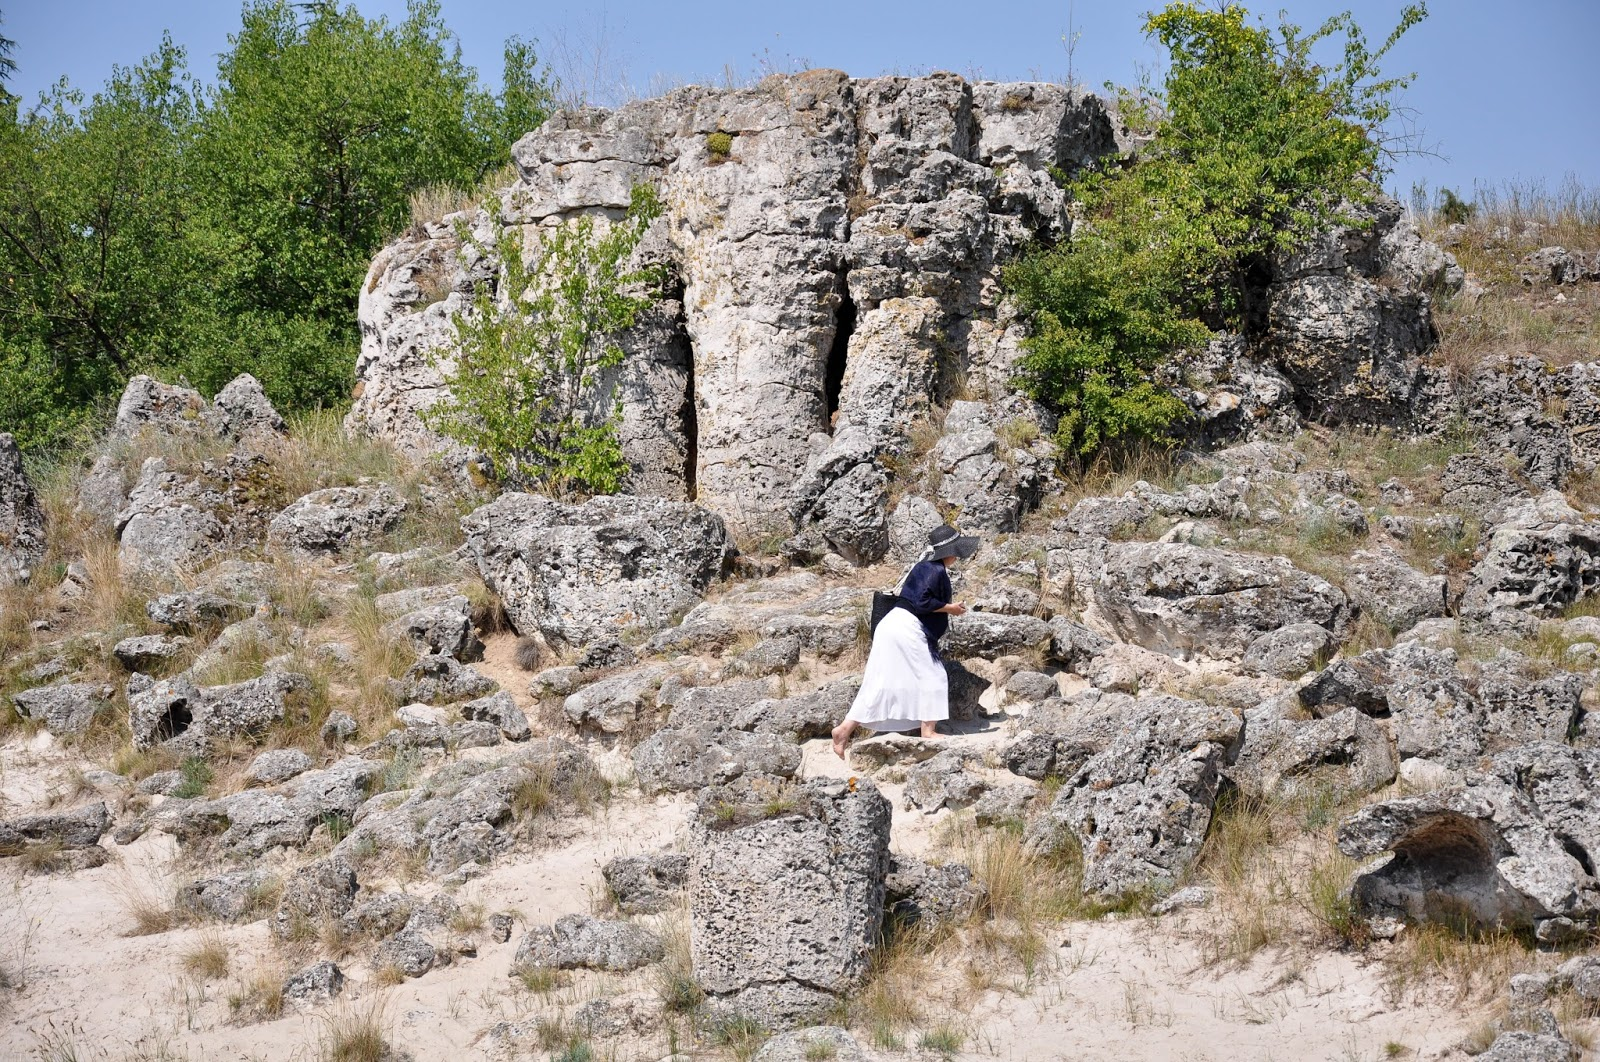 A tourist in The Stone Forest, Varna, Bulgaria